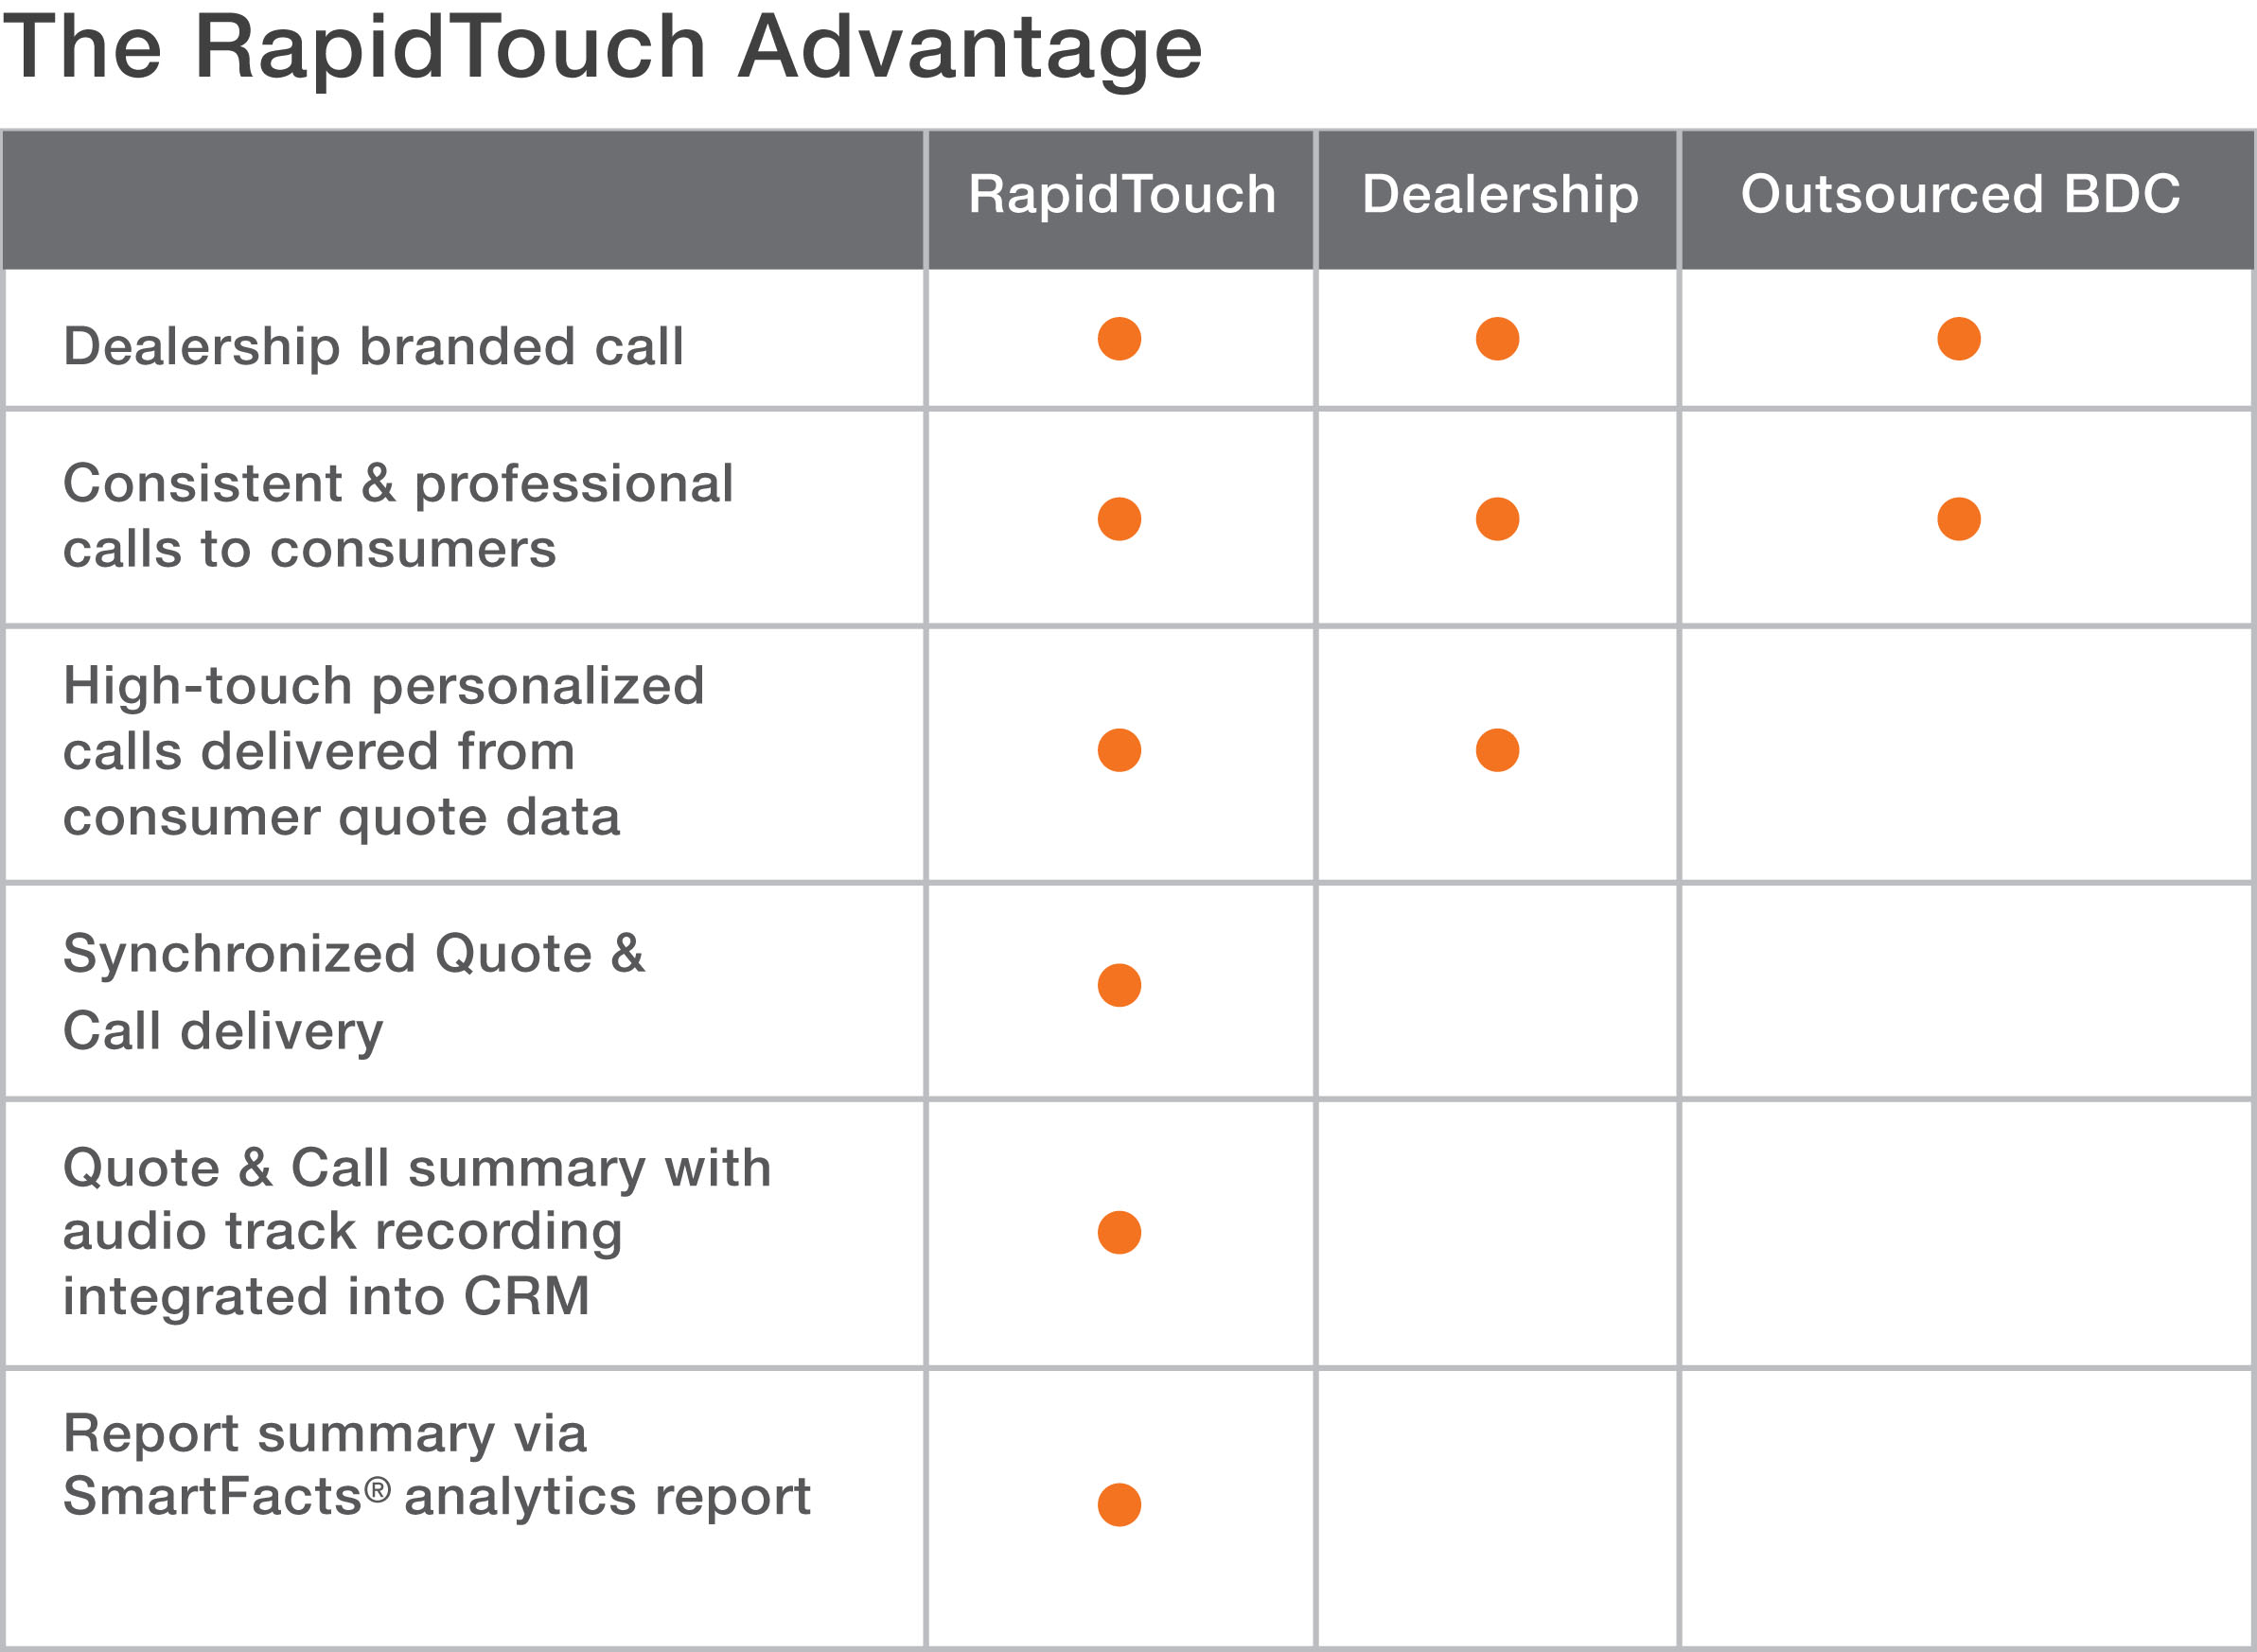 The RapidTouch advantage